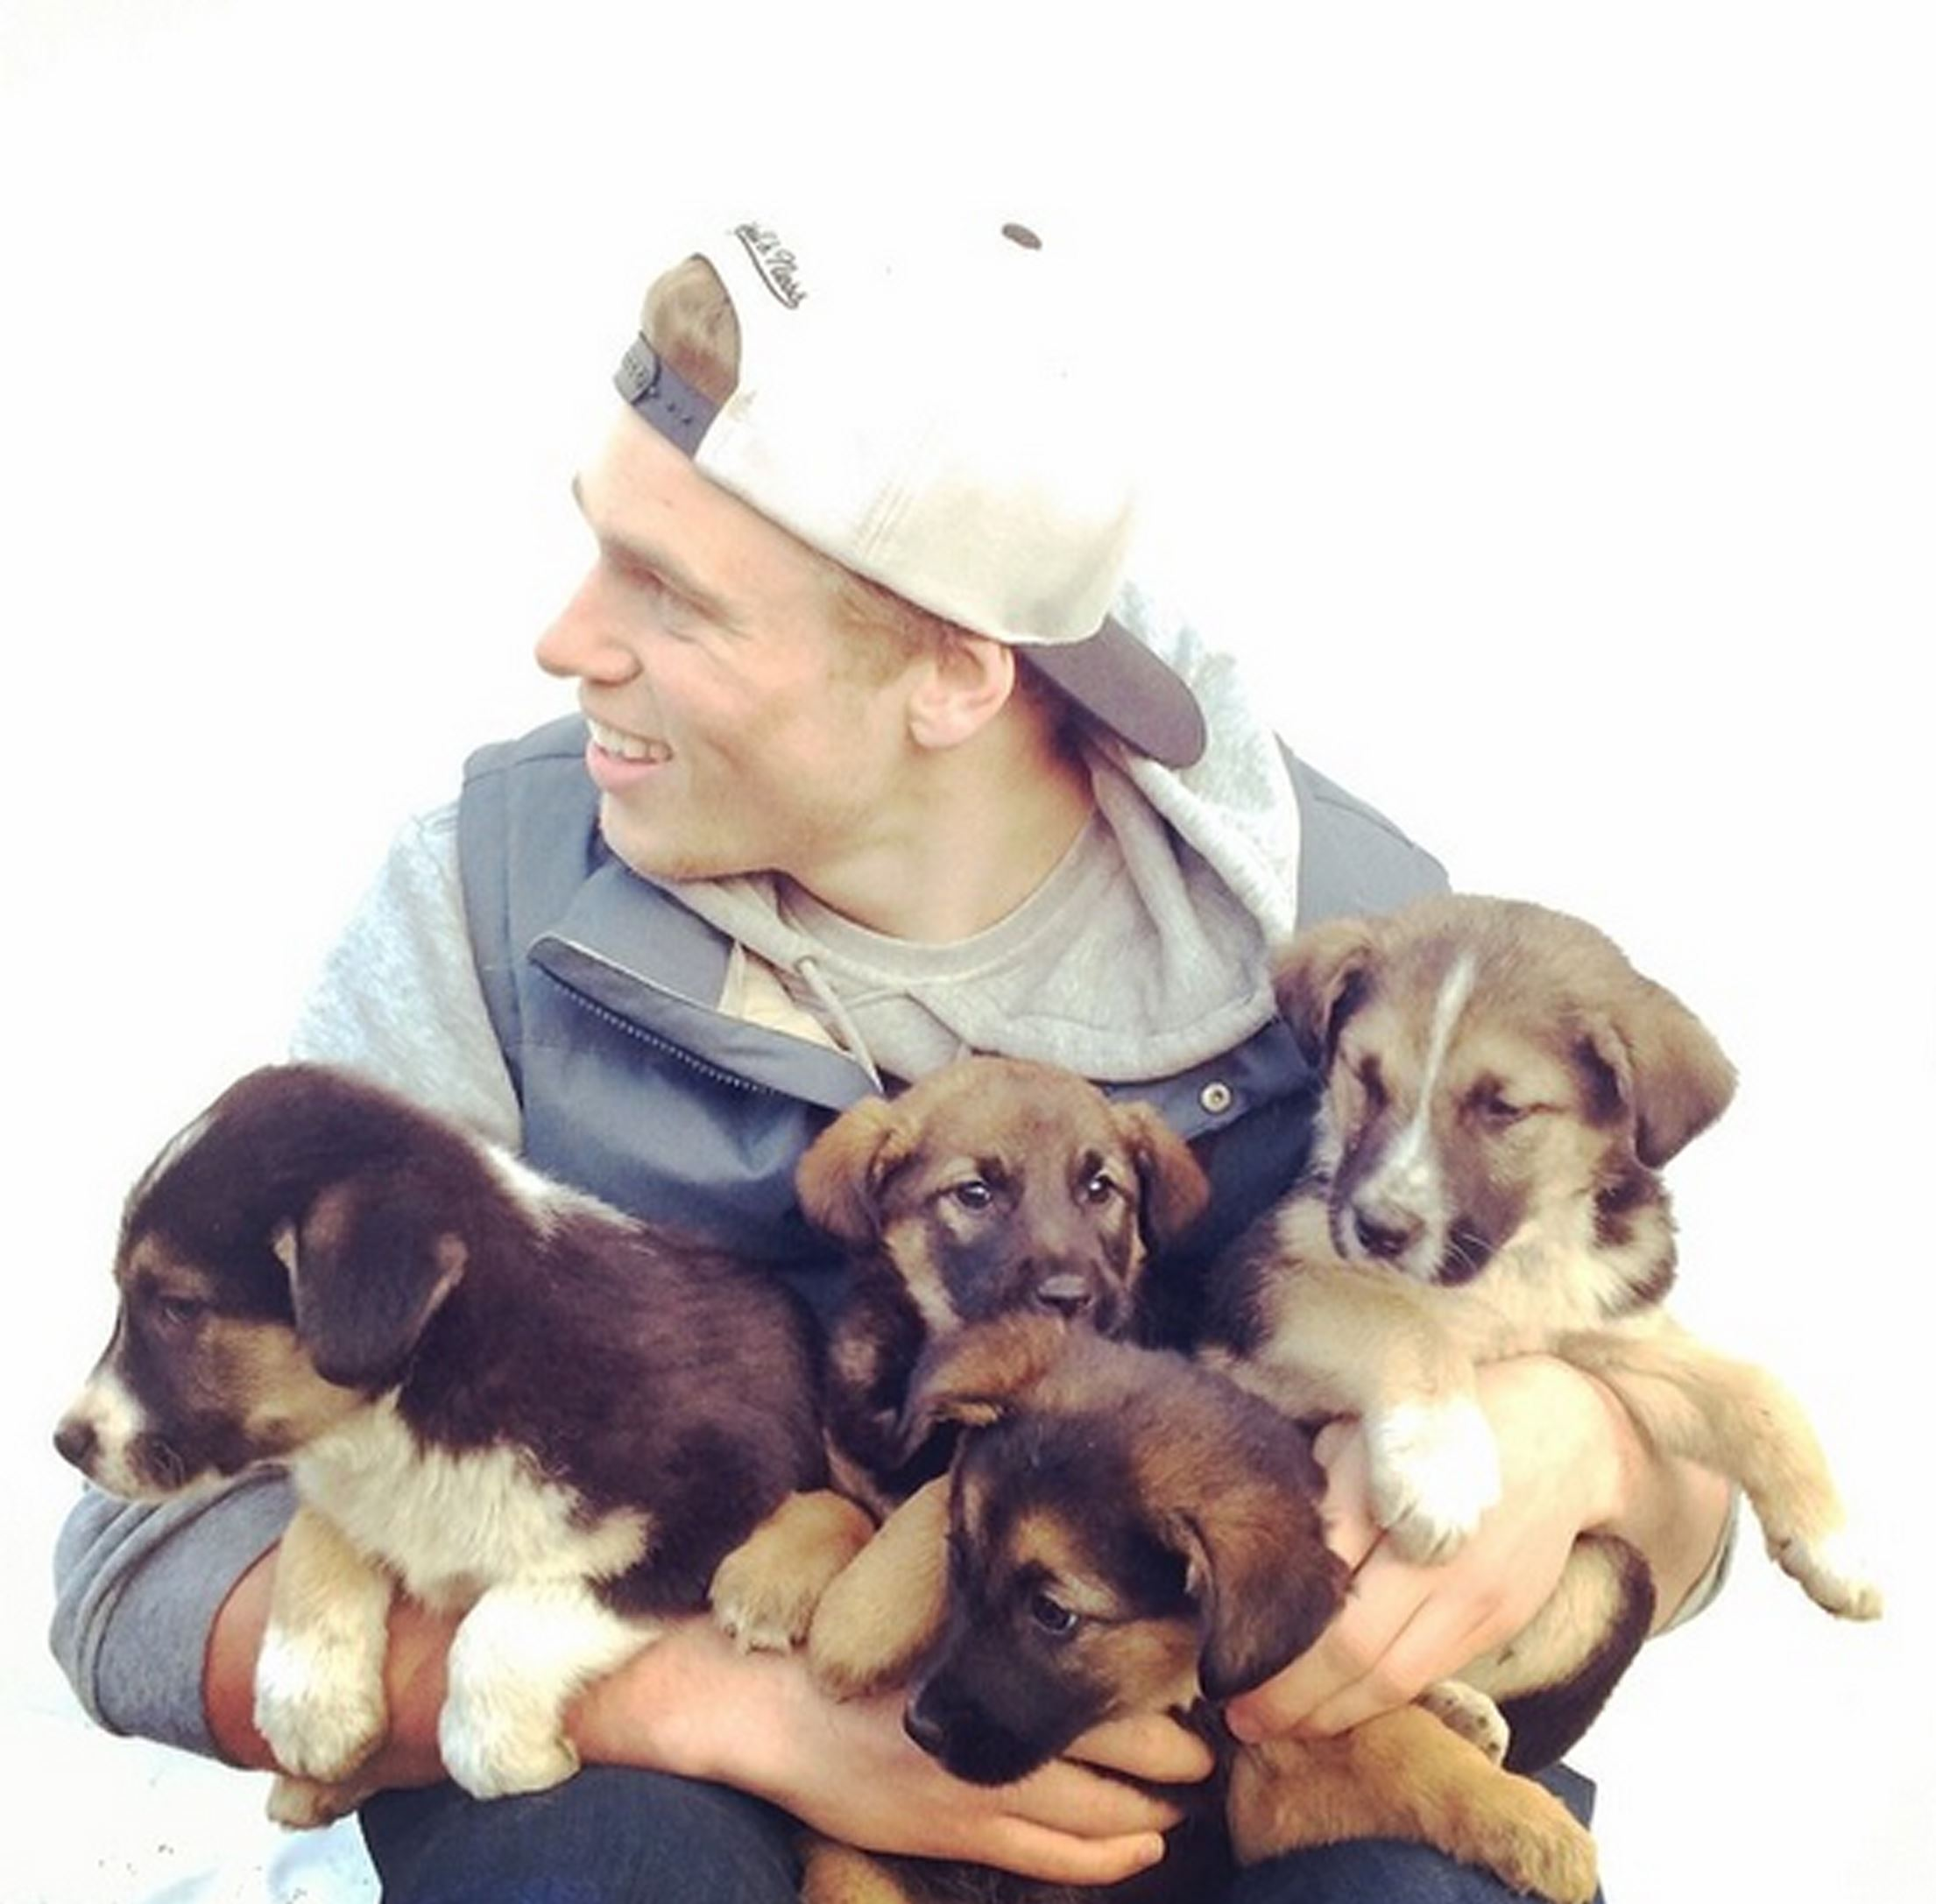 20140806hopettales0809AAmag Gus Kenworthy in the Olympic Village in Sochi, Russia, with the street puppies he found and rescued. This picture, taken by his friend, freelance photographer Robin Macdonald, went viral on social media and deluged the silver medalist with interview requests from the media.